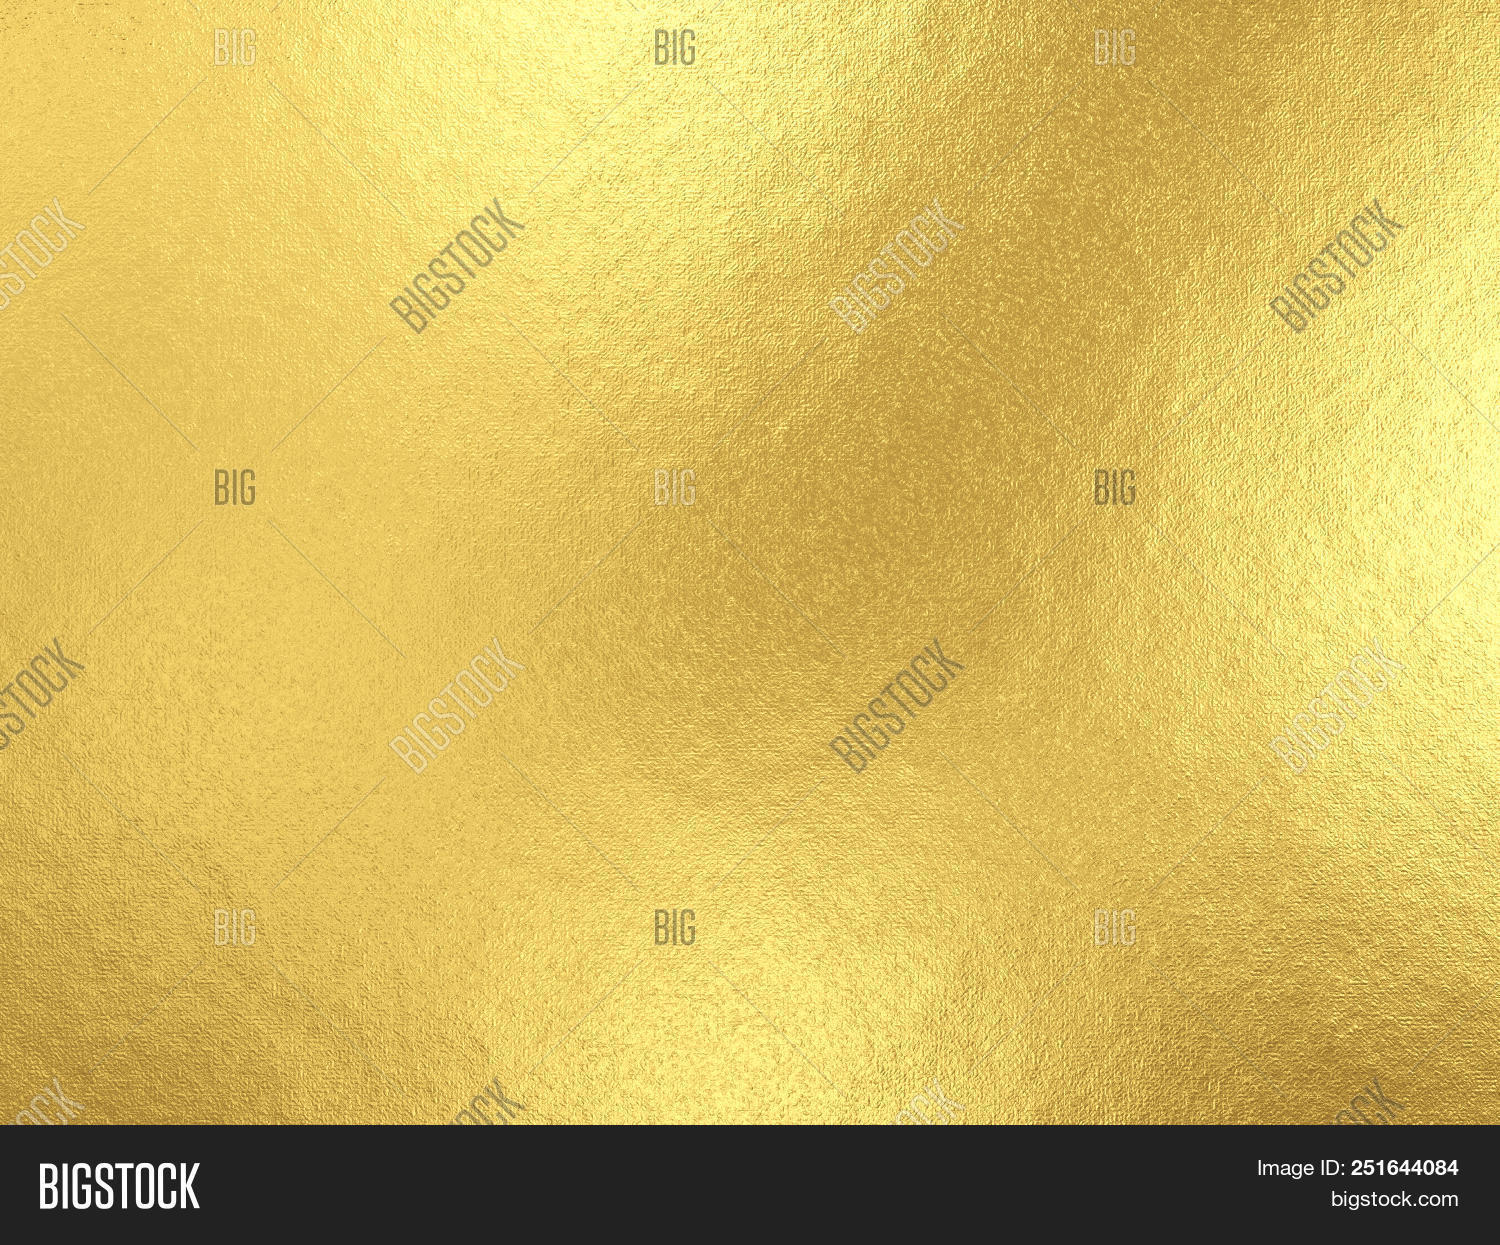 3d,backdrop,background,blank,brass,bright,celebration,christmas,clean,design,foil,glamour,glossy,gold,golden,graphic,illustration,light,luxurious,luxury,metal,metallic,paint,panel,reflect,reflection,render,rendering,rich,shine,shiny,template,texture,textured,vintage,wall,wallpaper,yellow